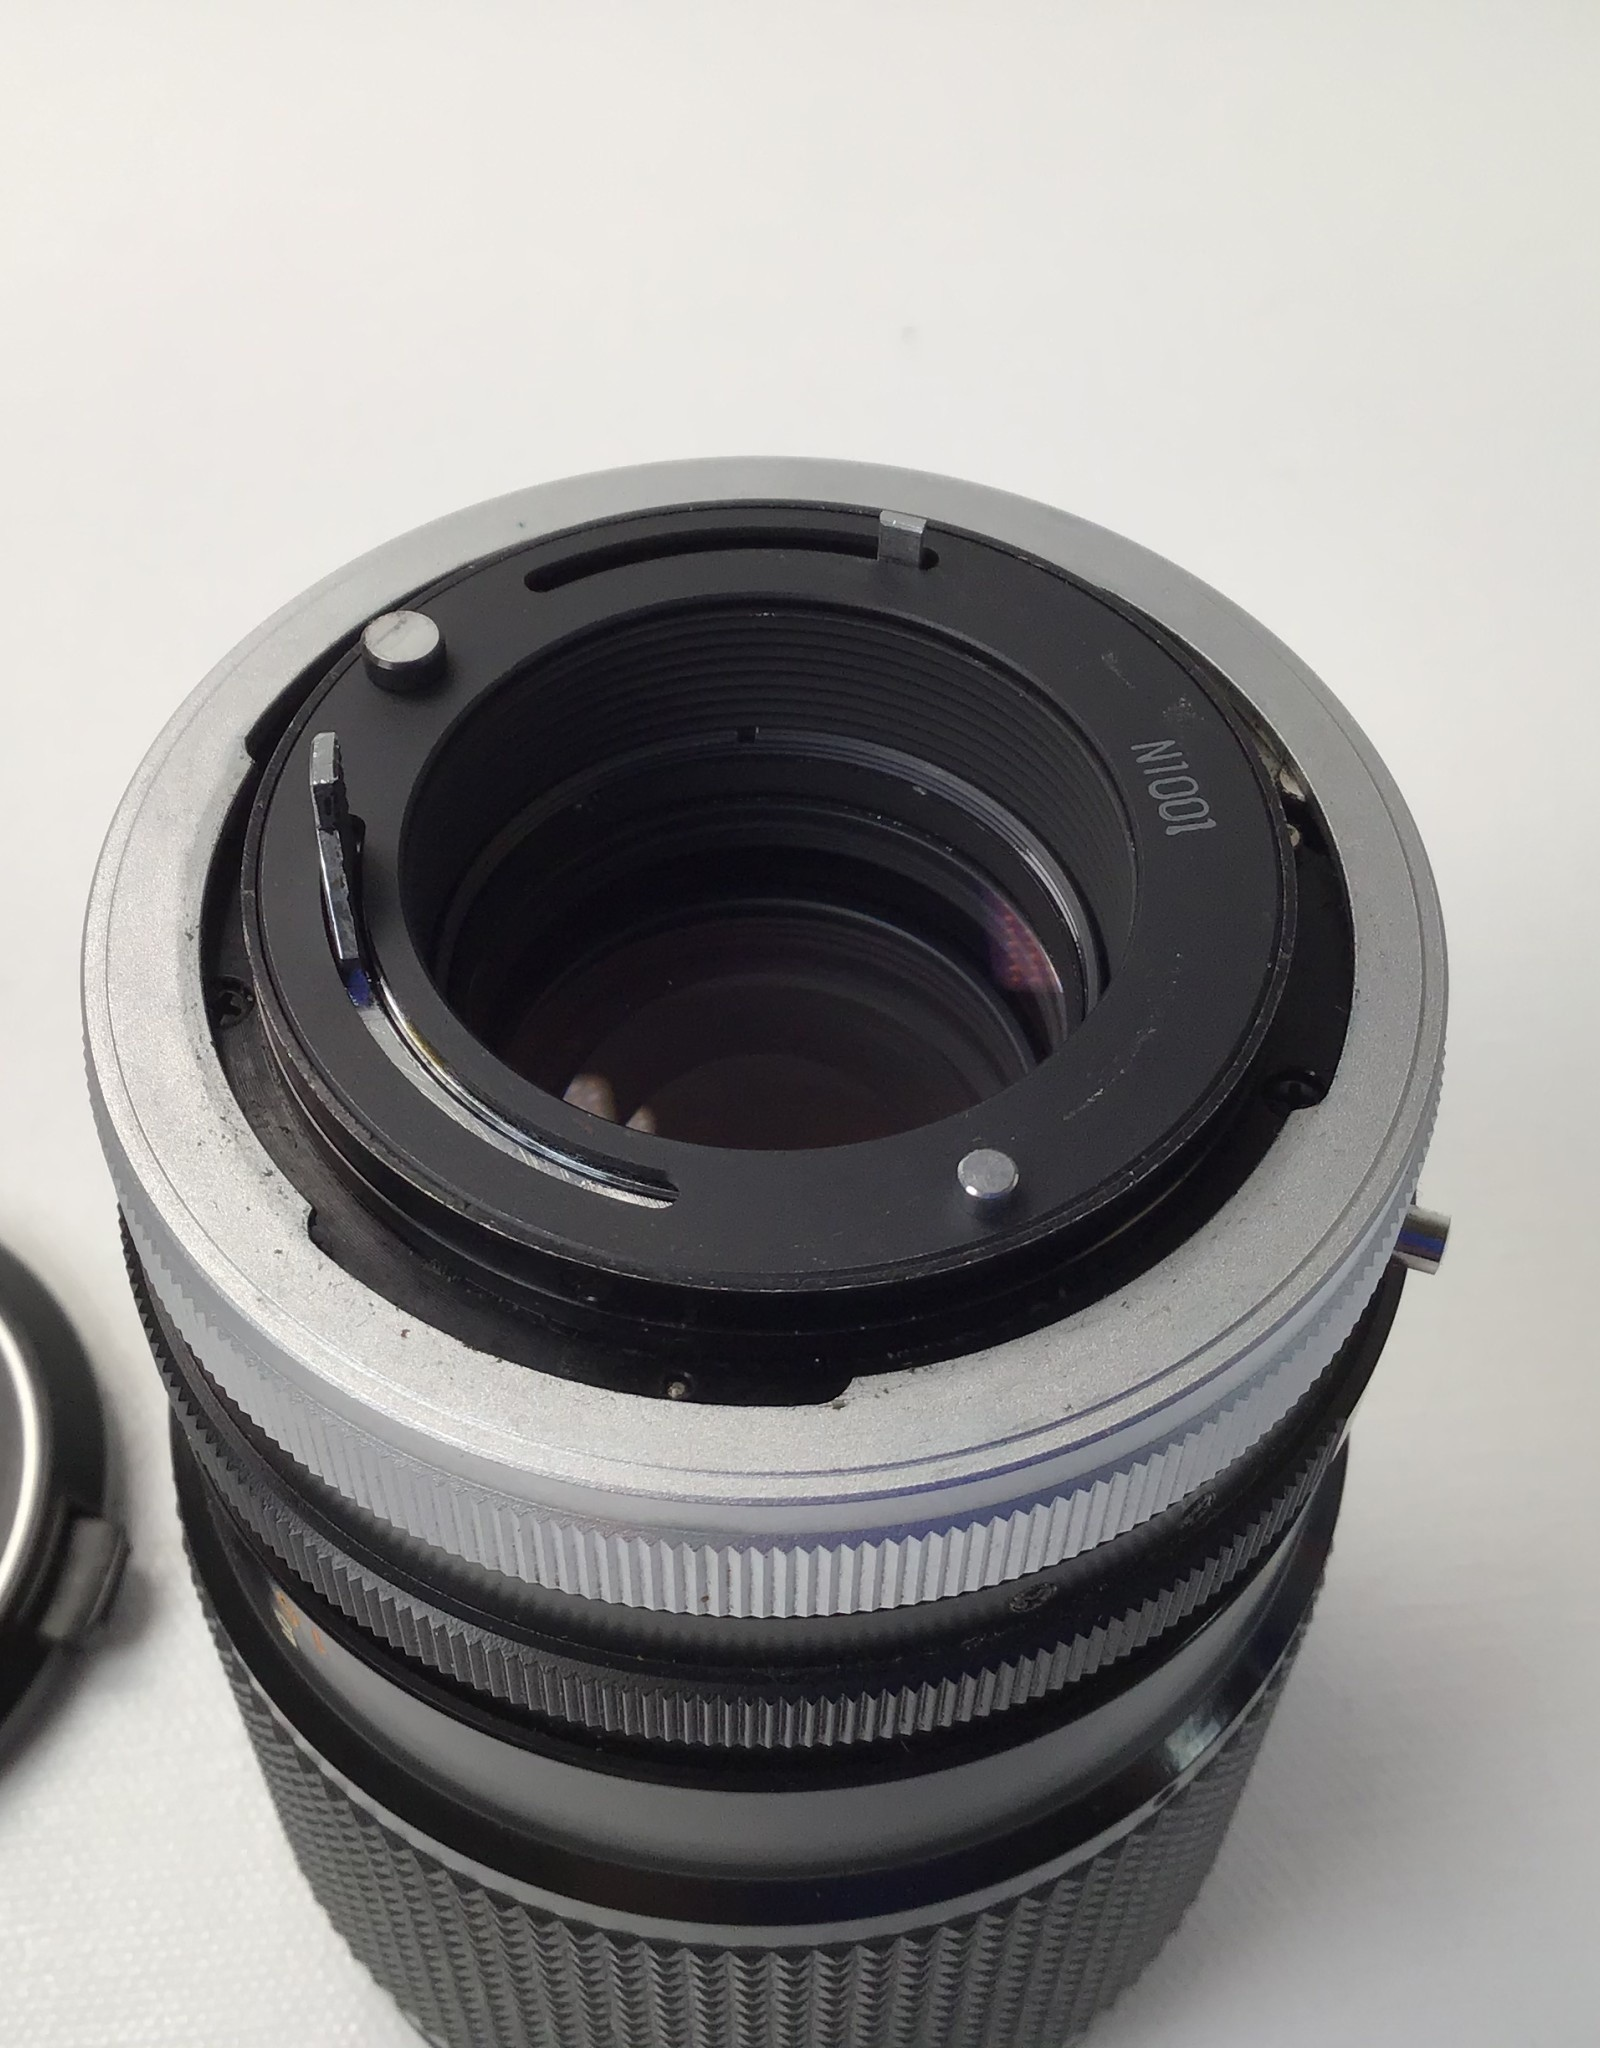 CANON Canon FD Bell & Howell 135mm f2.5 Lens Used EX